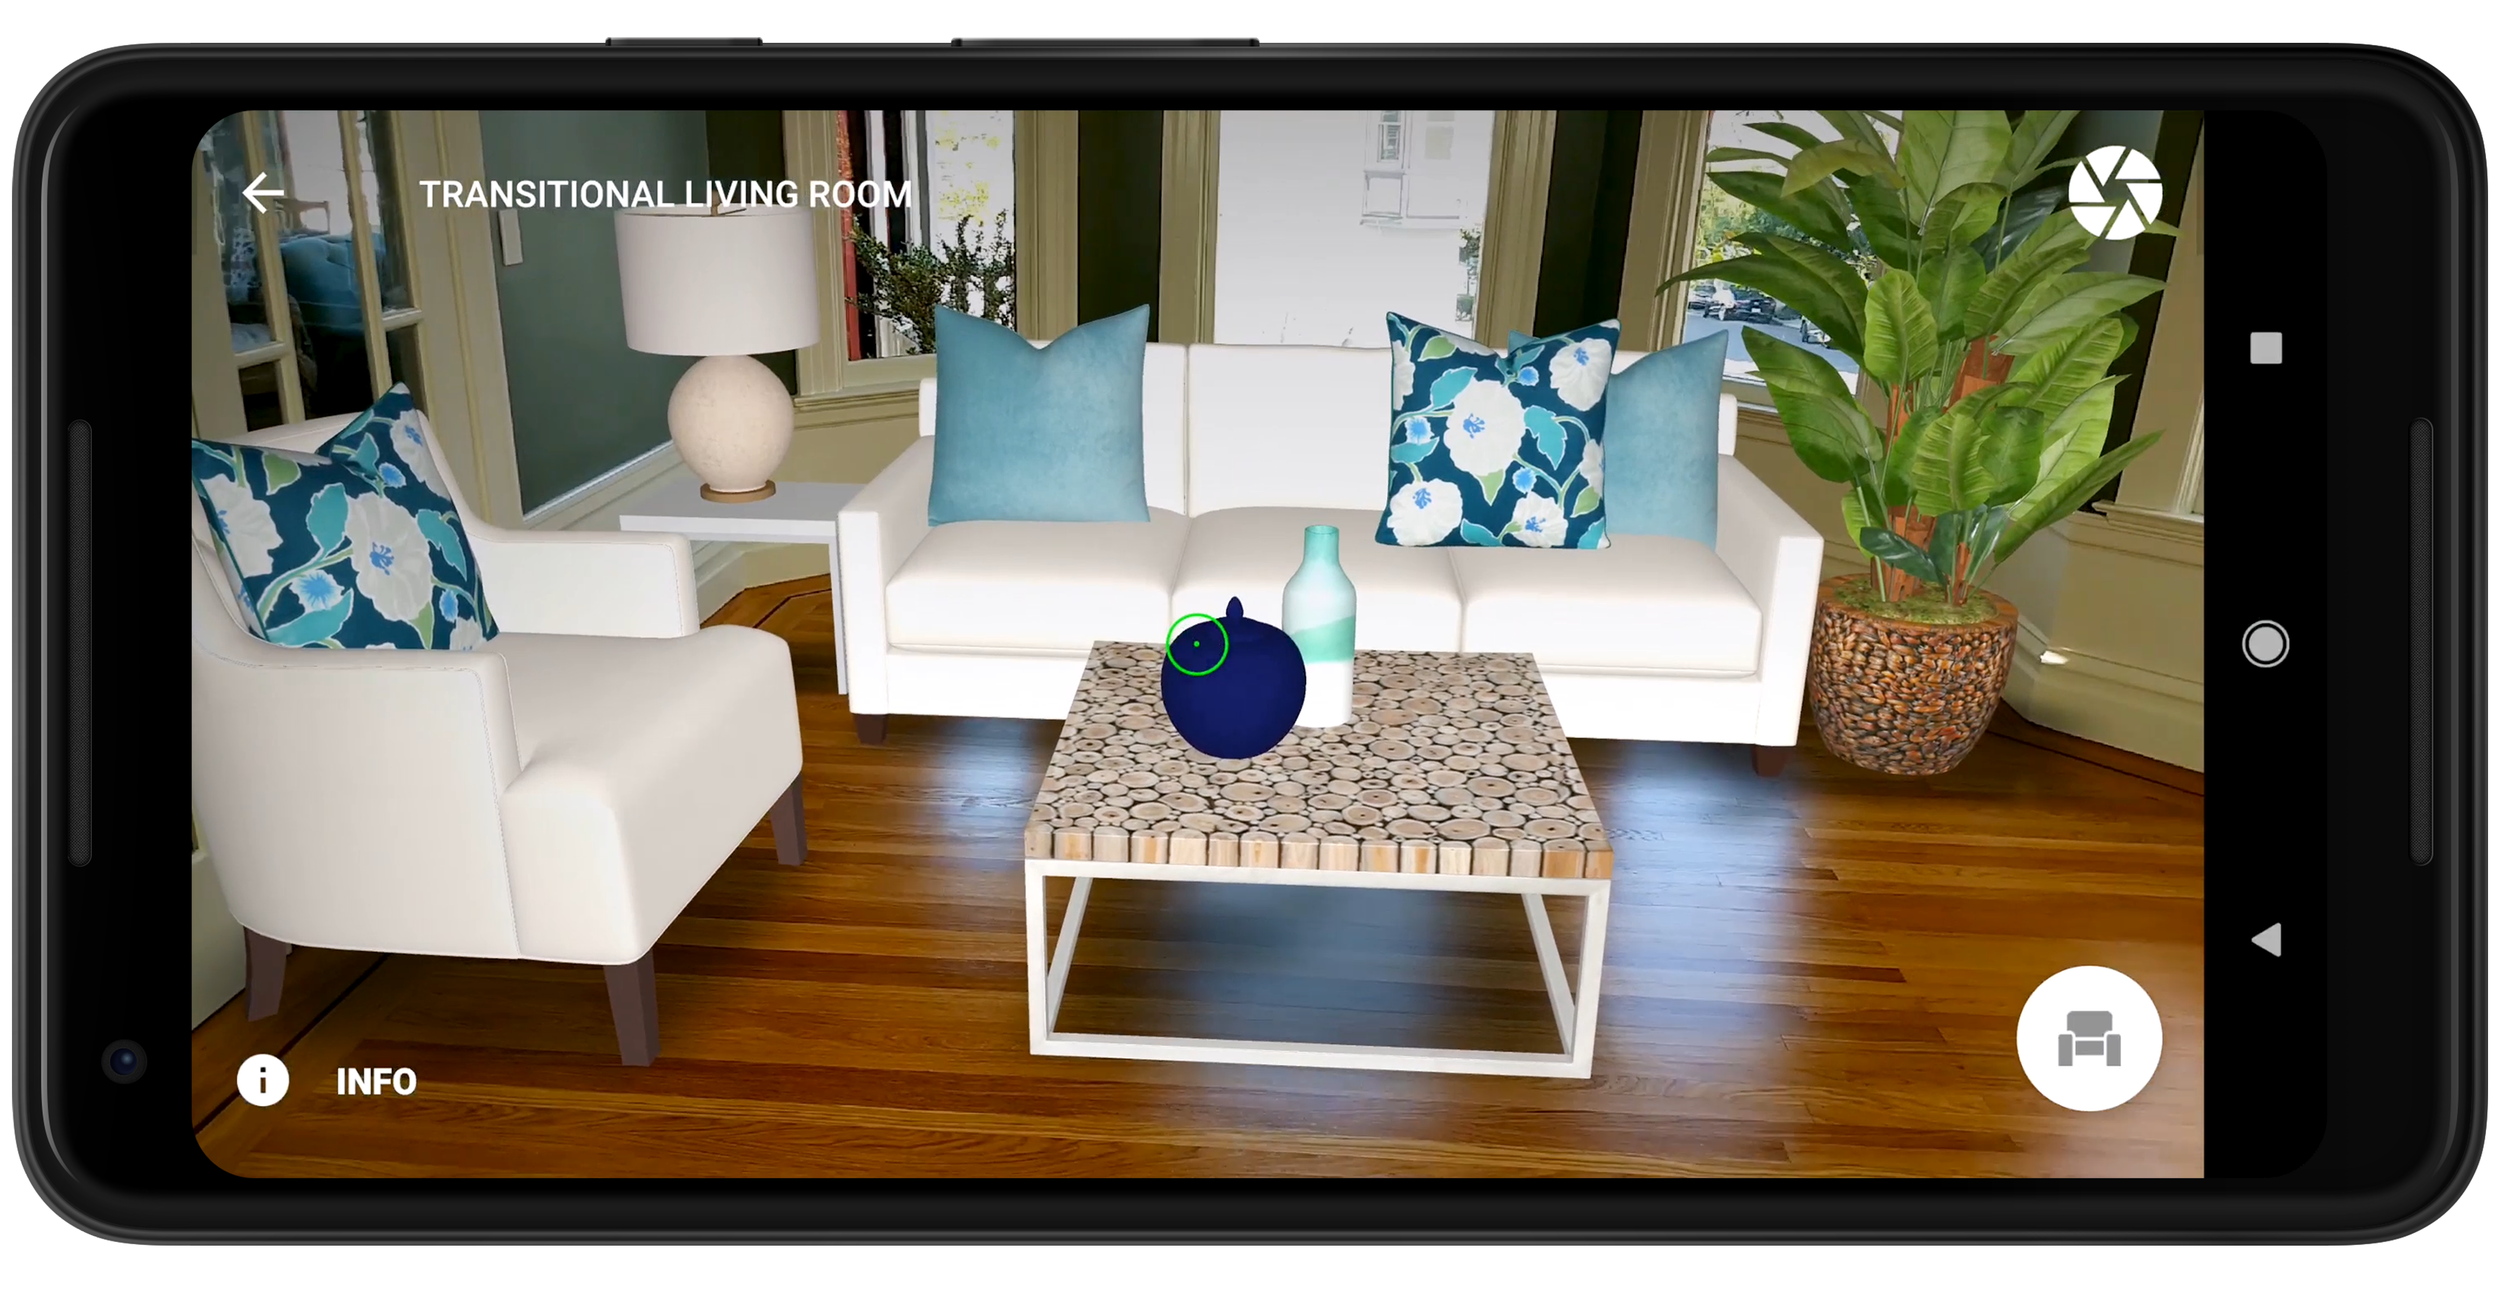 The Sotheby's International Realty® brand has  introduced  revolutionary augmented reality (AR) app Curate by Sotheby's International Realty(sm).  Here are some of the ways the app will benefit homebuyers, sellers, and real estate agents.